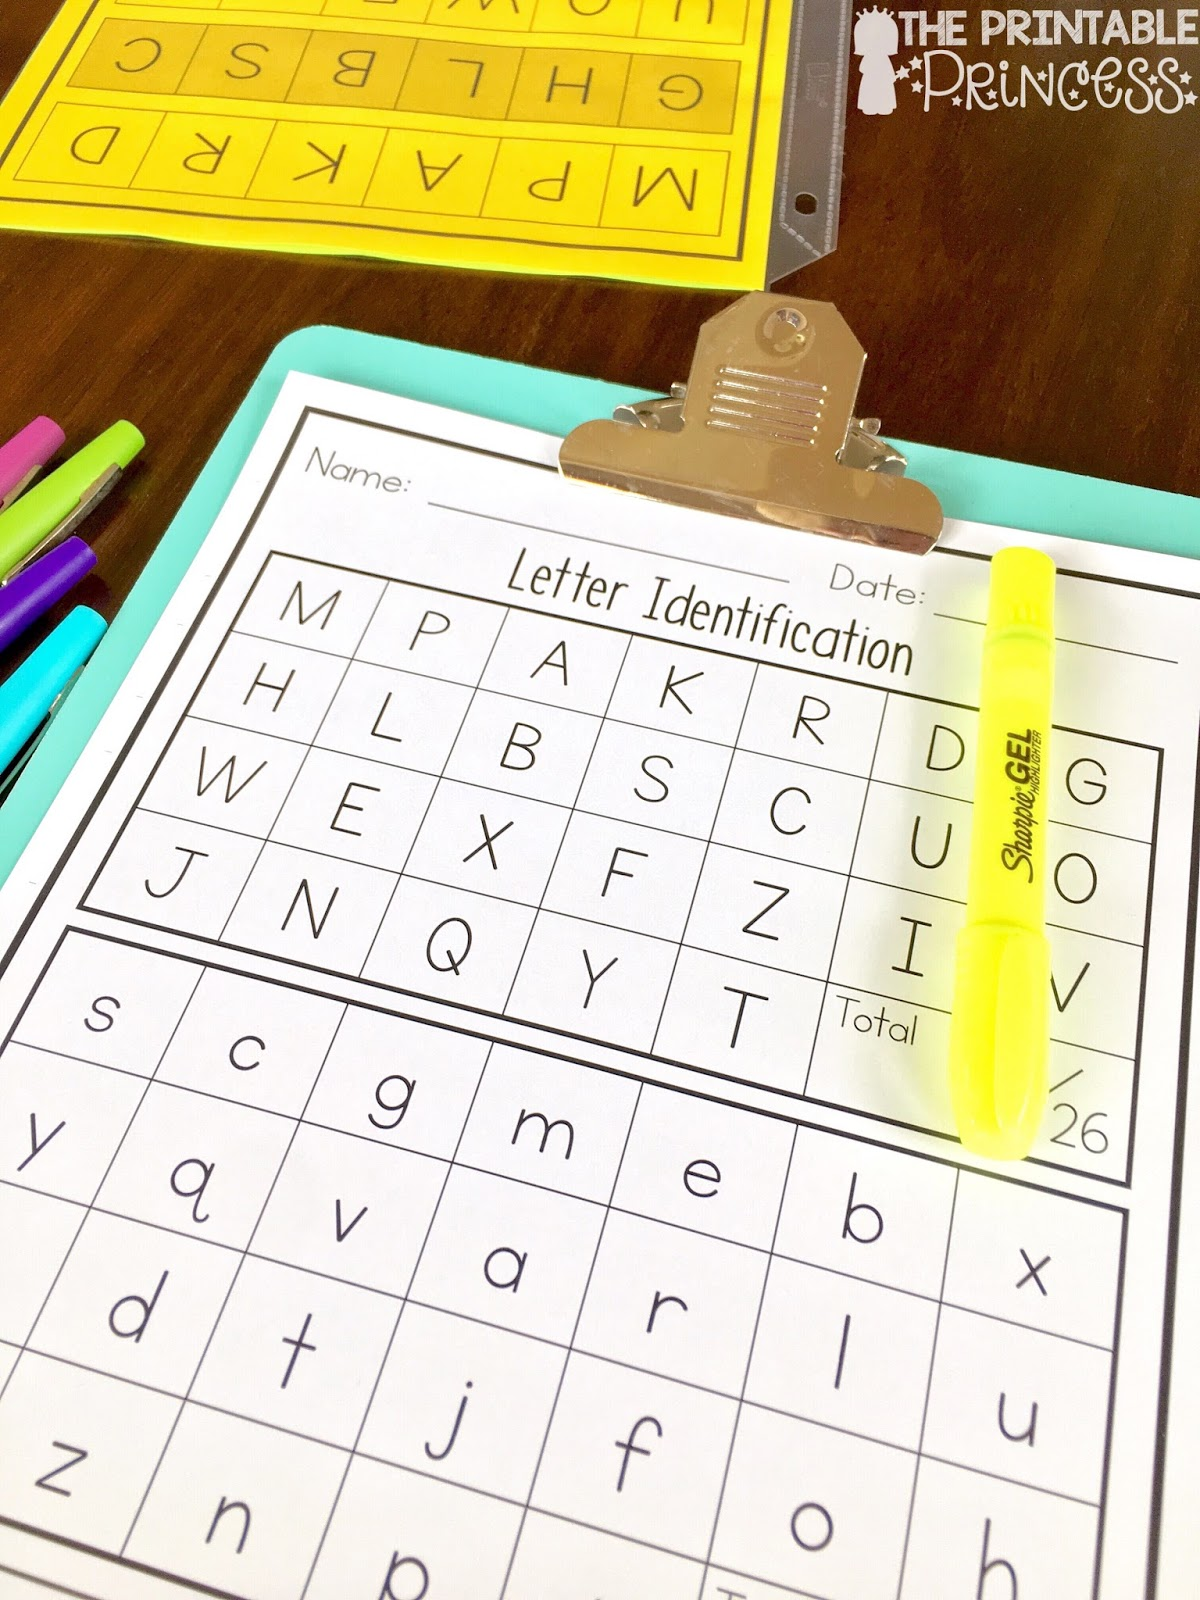 The Printable Princess Letter Recognition And Alphabet Activities For Kindergarten